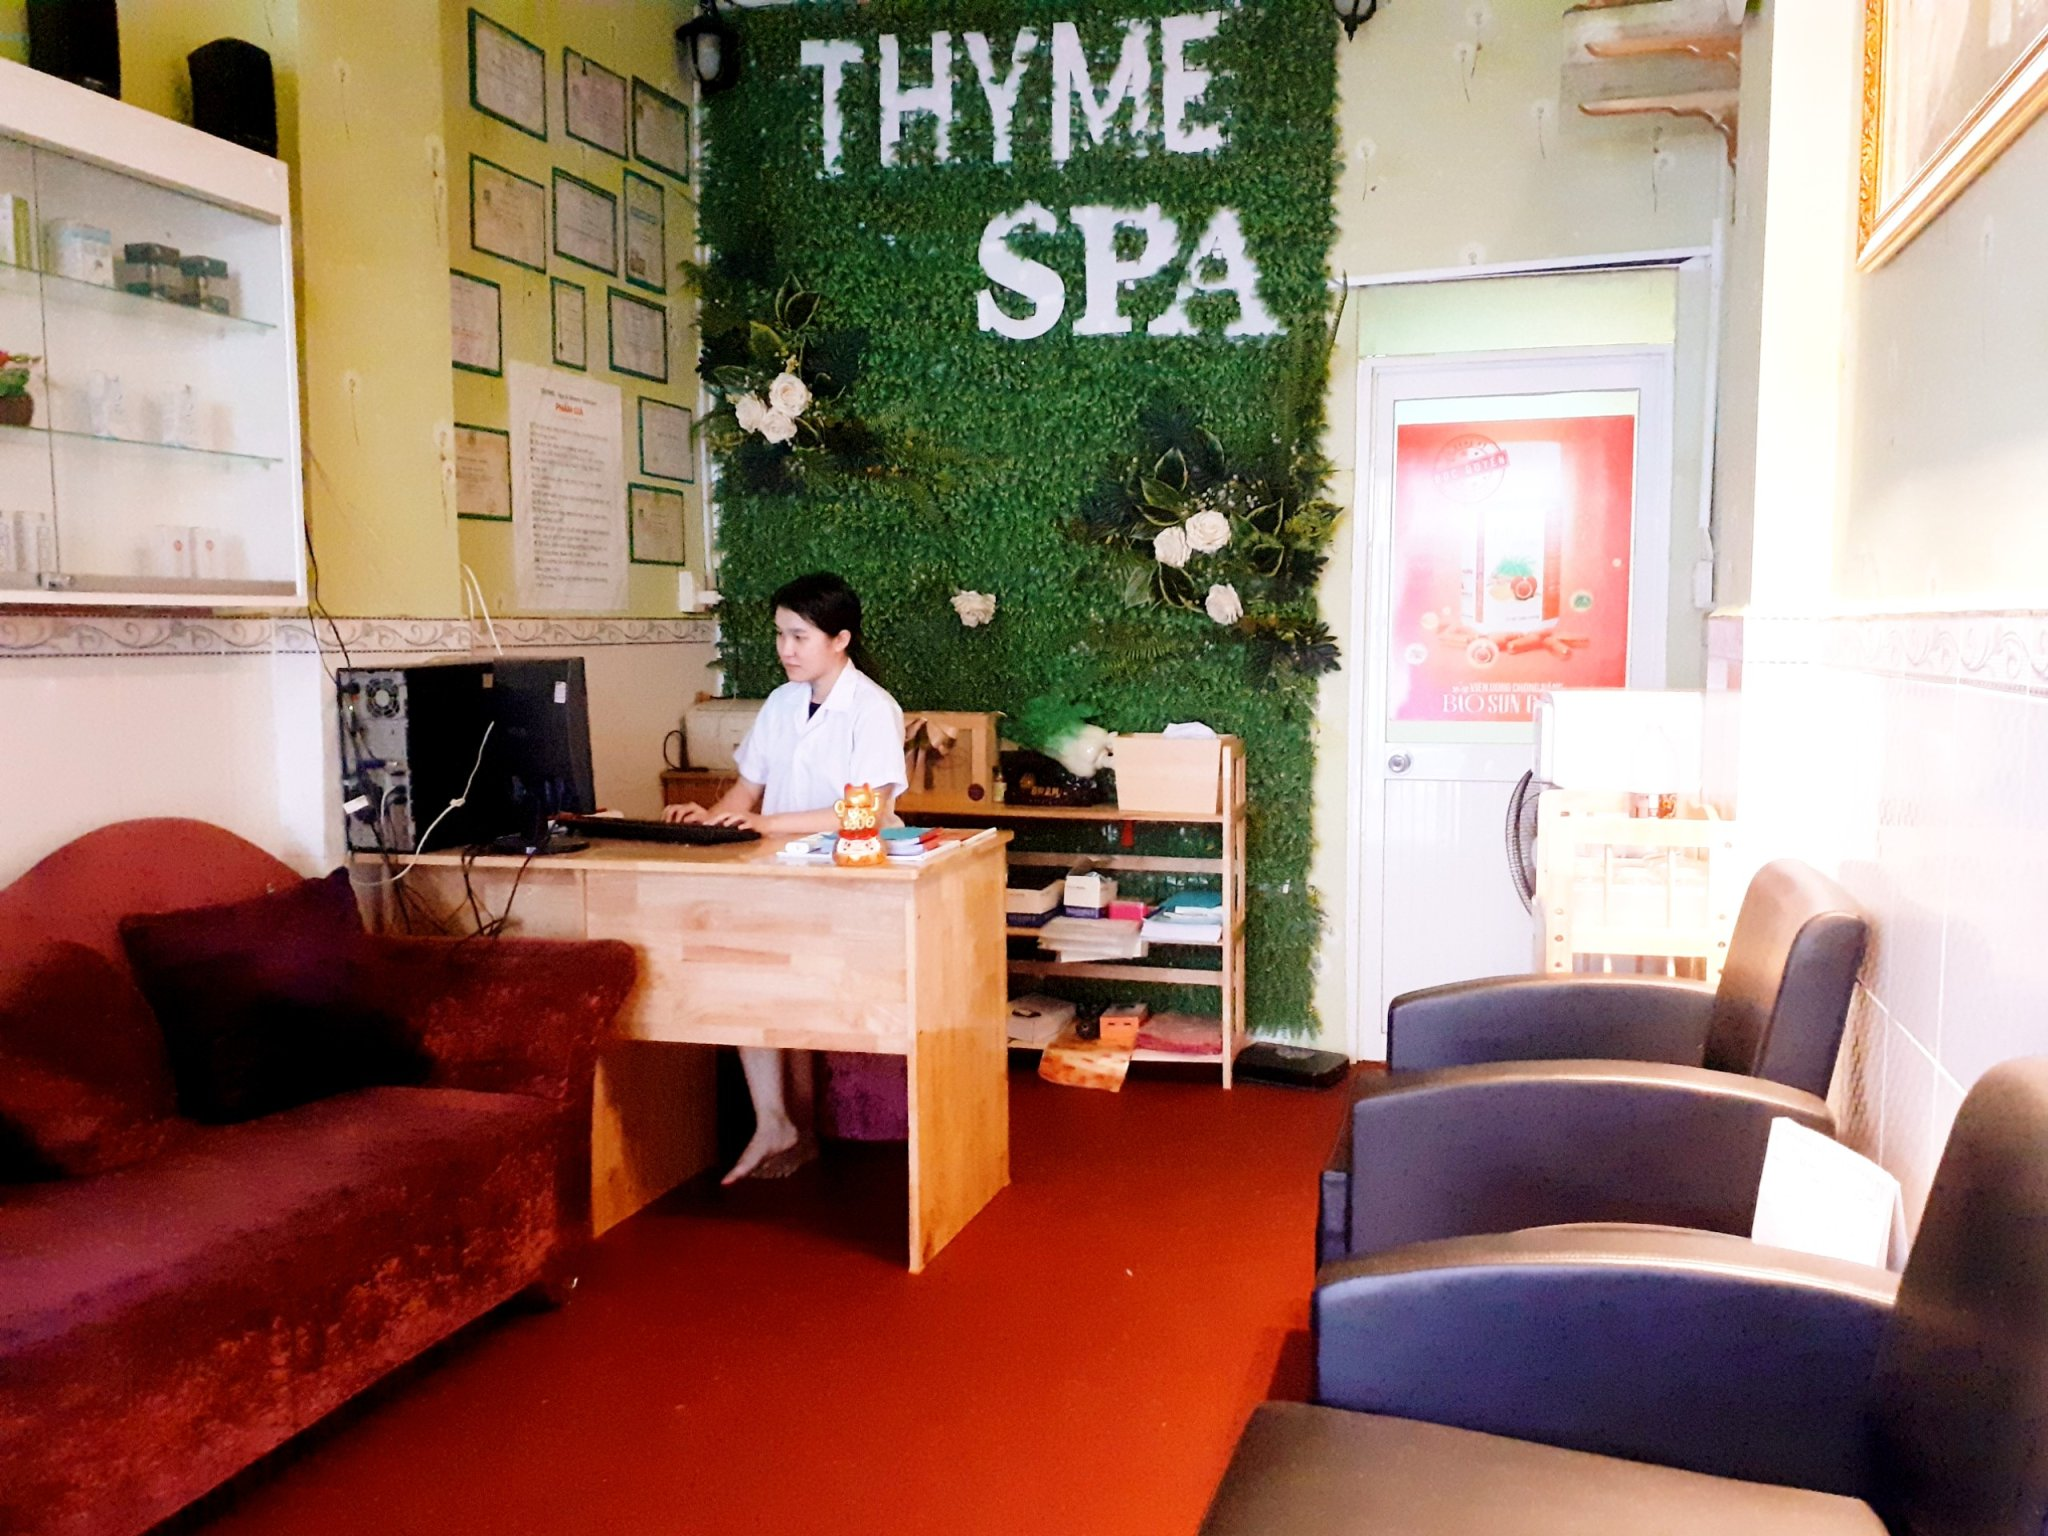 Thyme Spa